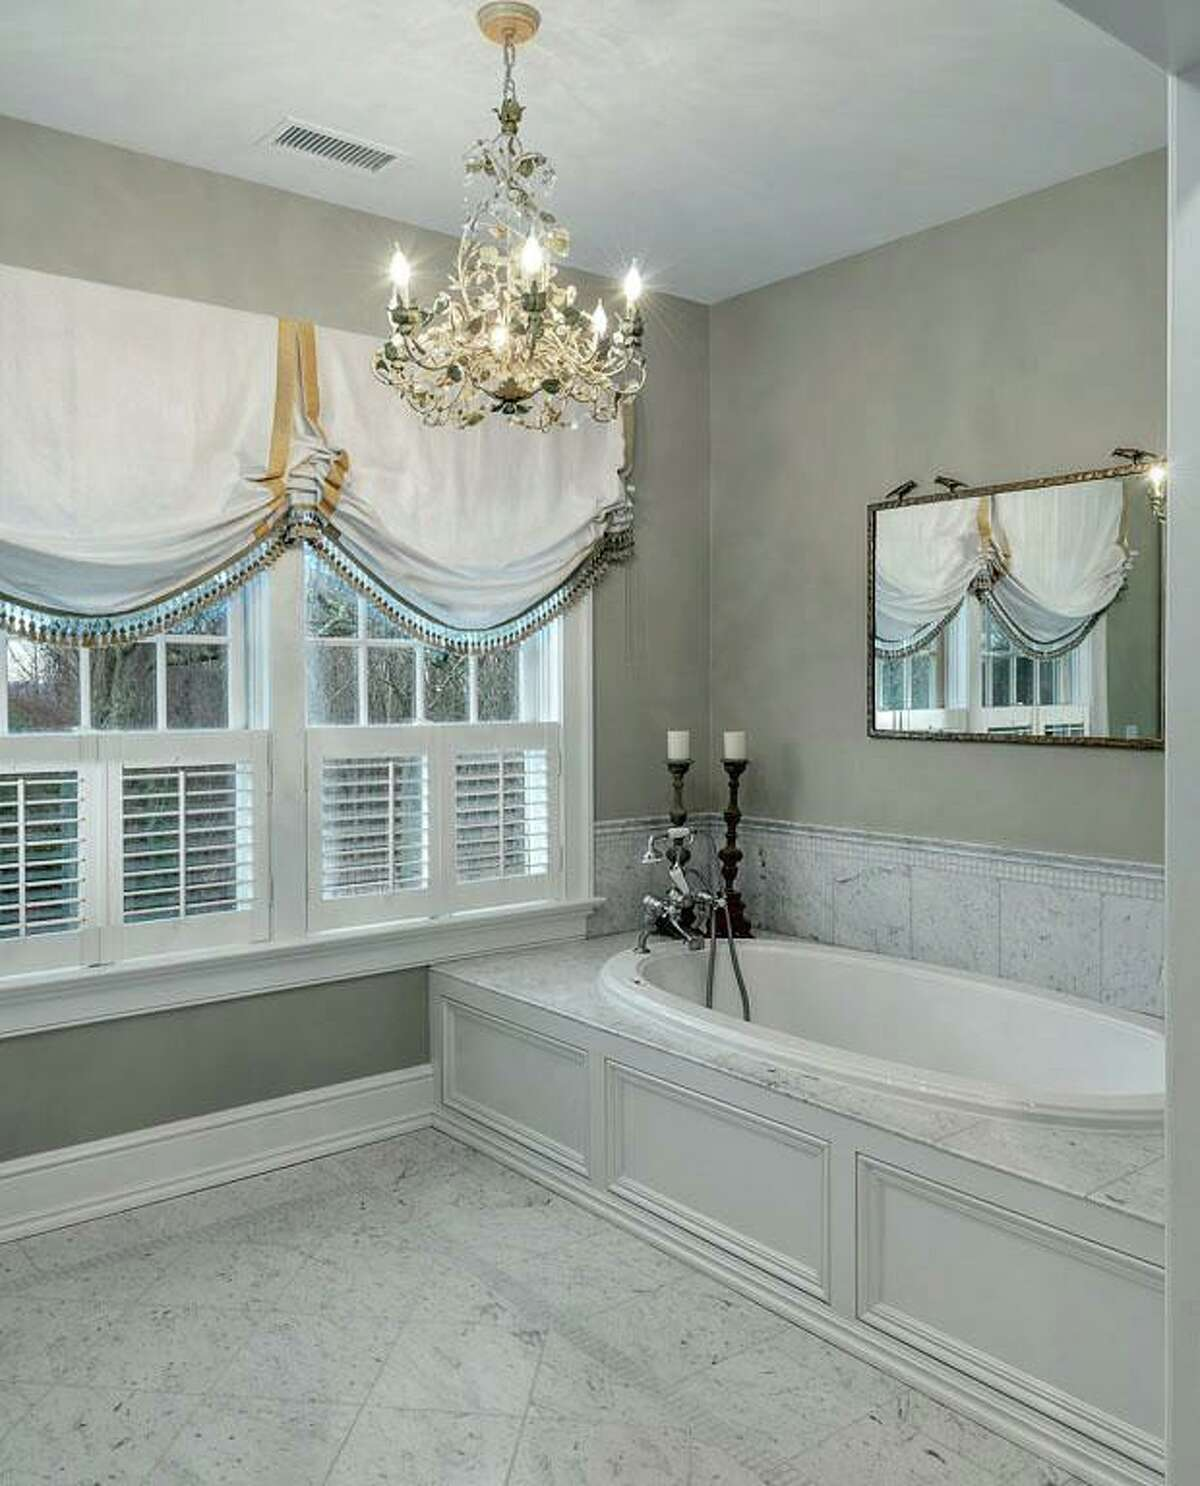 The master bath has a steam shower and jetted tub.